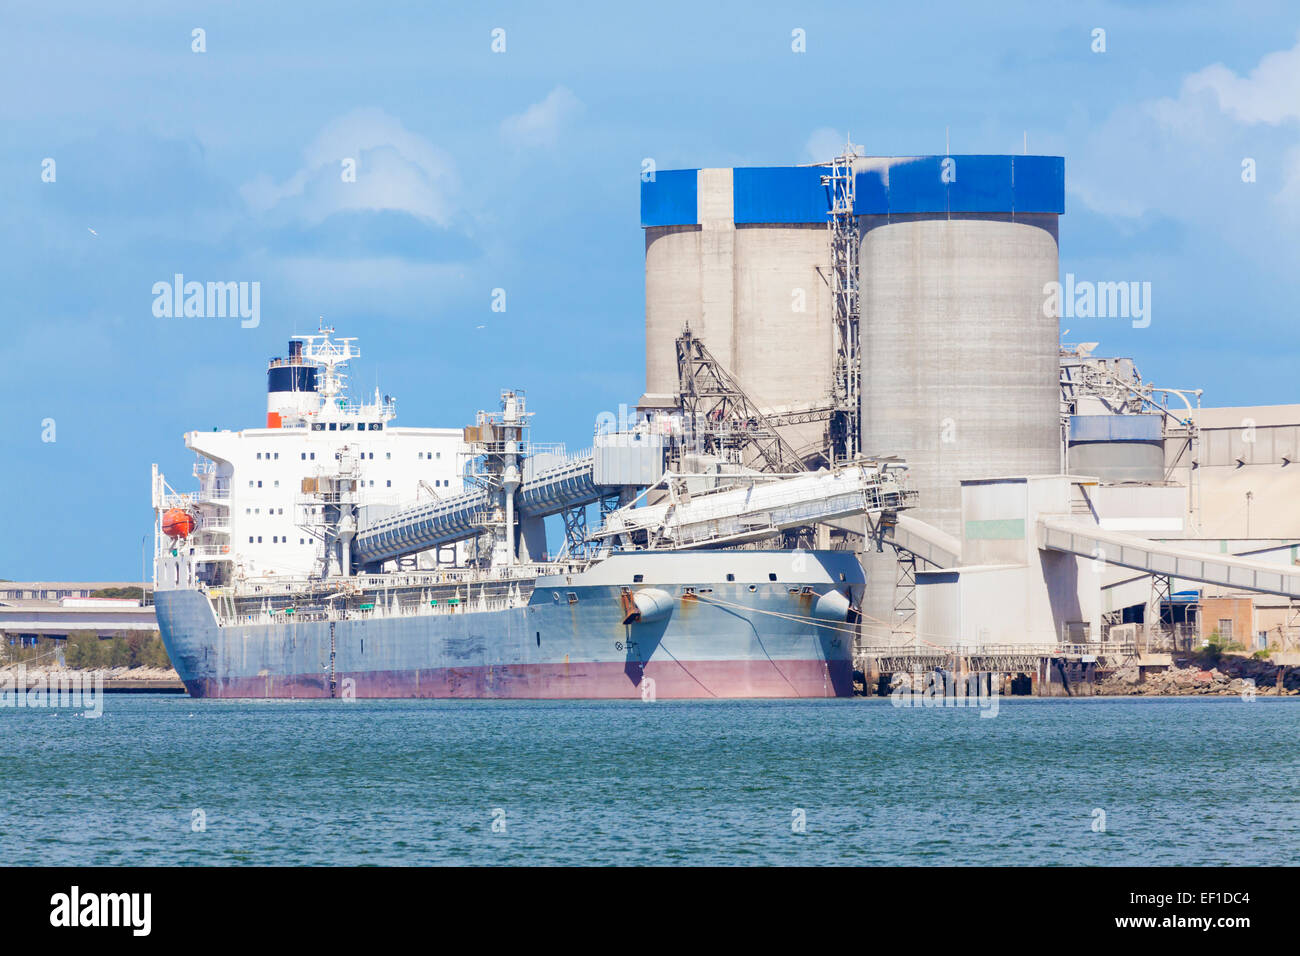 Cargo ship unloading at a cement plant - Stock Image